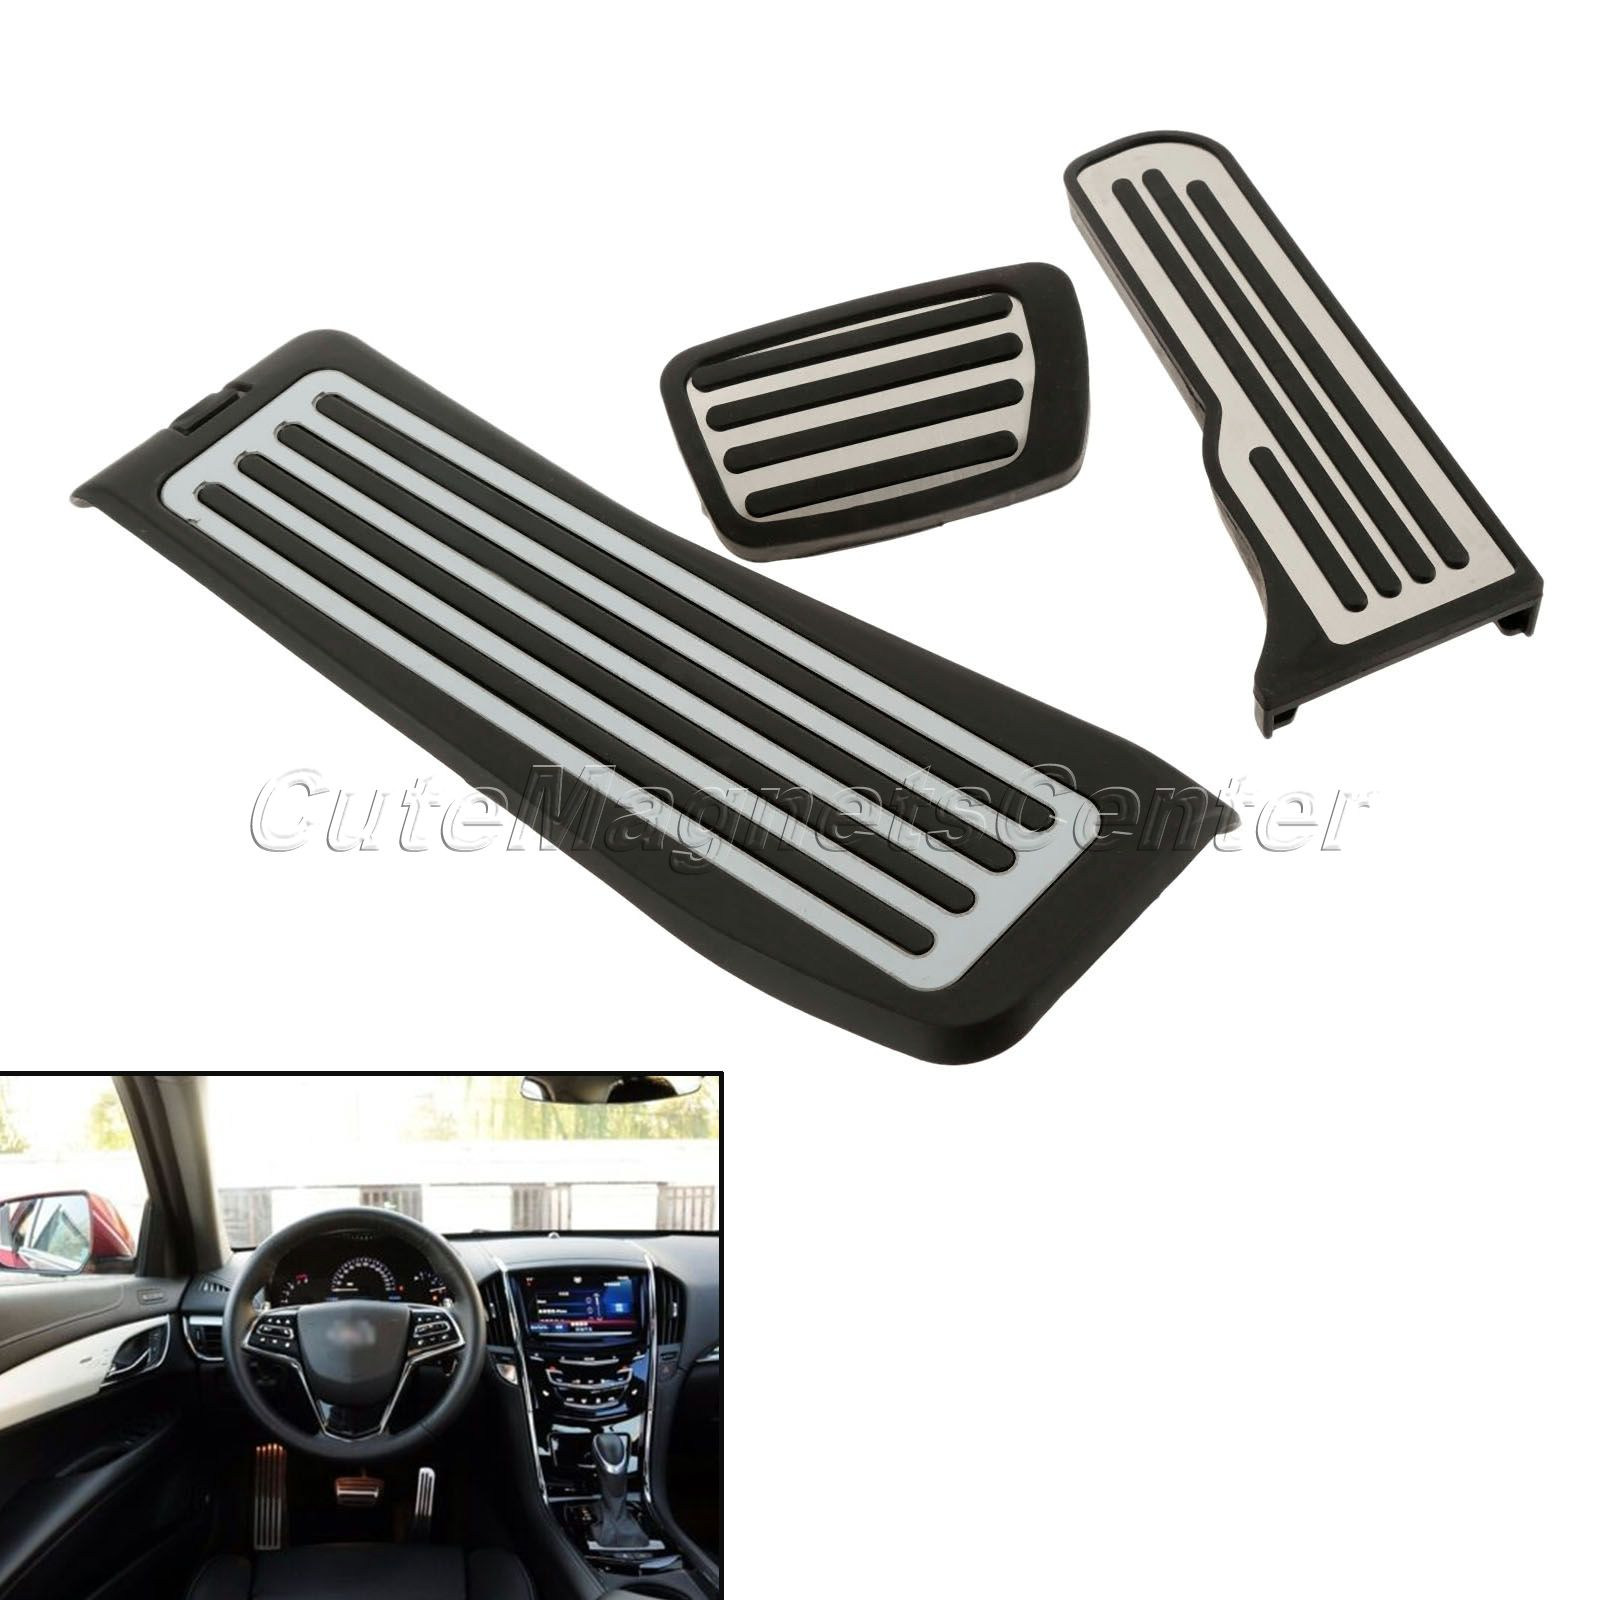 Stainless Steel Car Footrest Pedals Gas Fuel Brake Foot Plate Cover Sticker forCadillac ATS ATS-L Series Car Accessories Styling